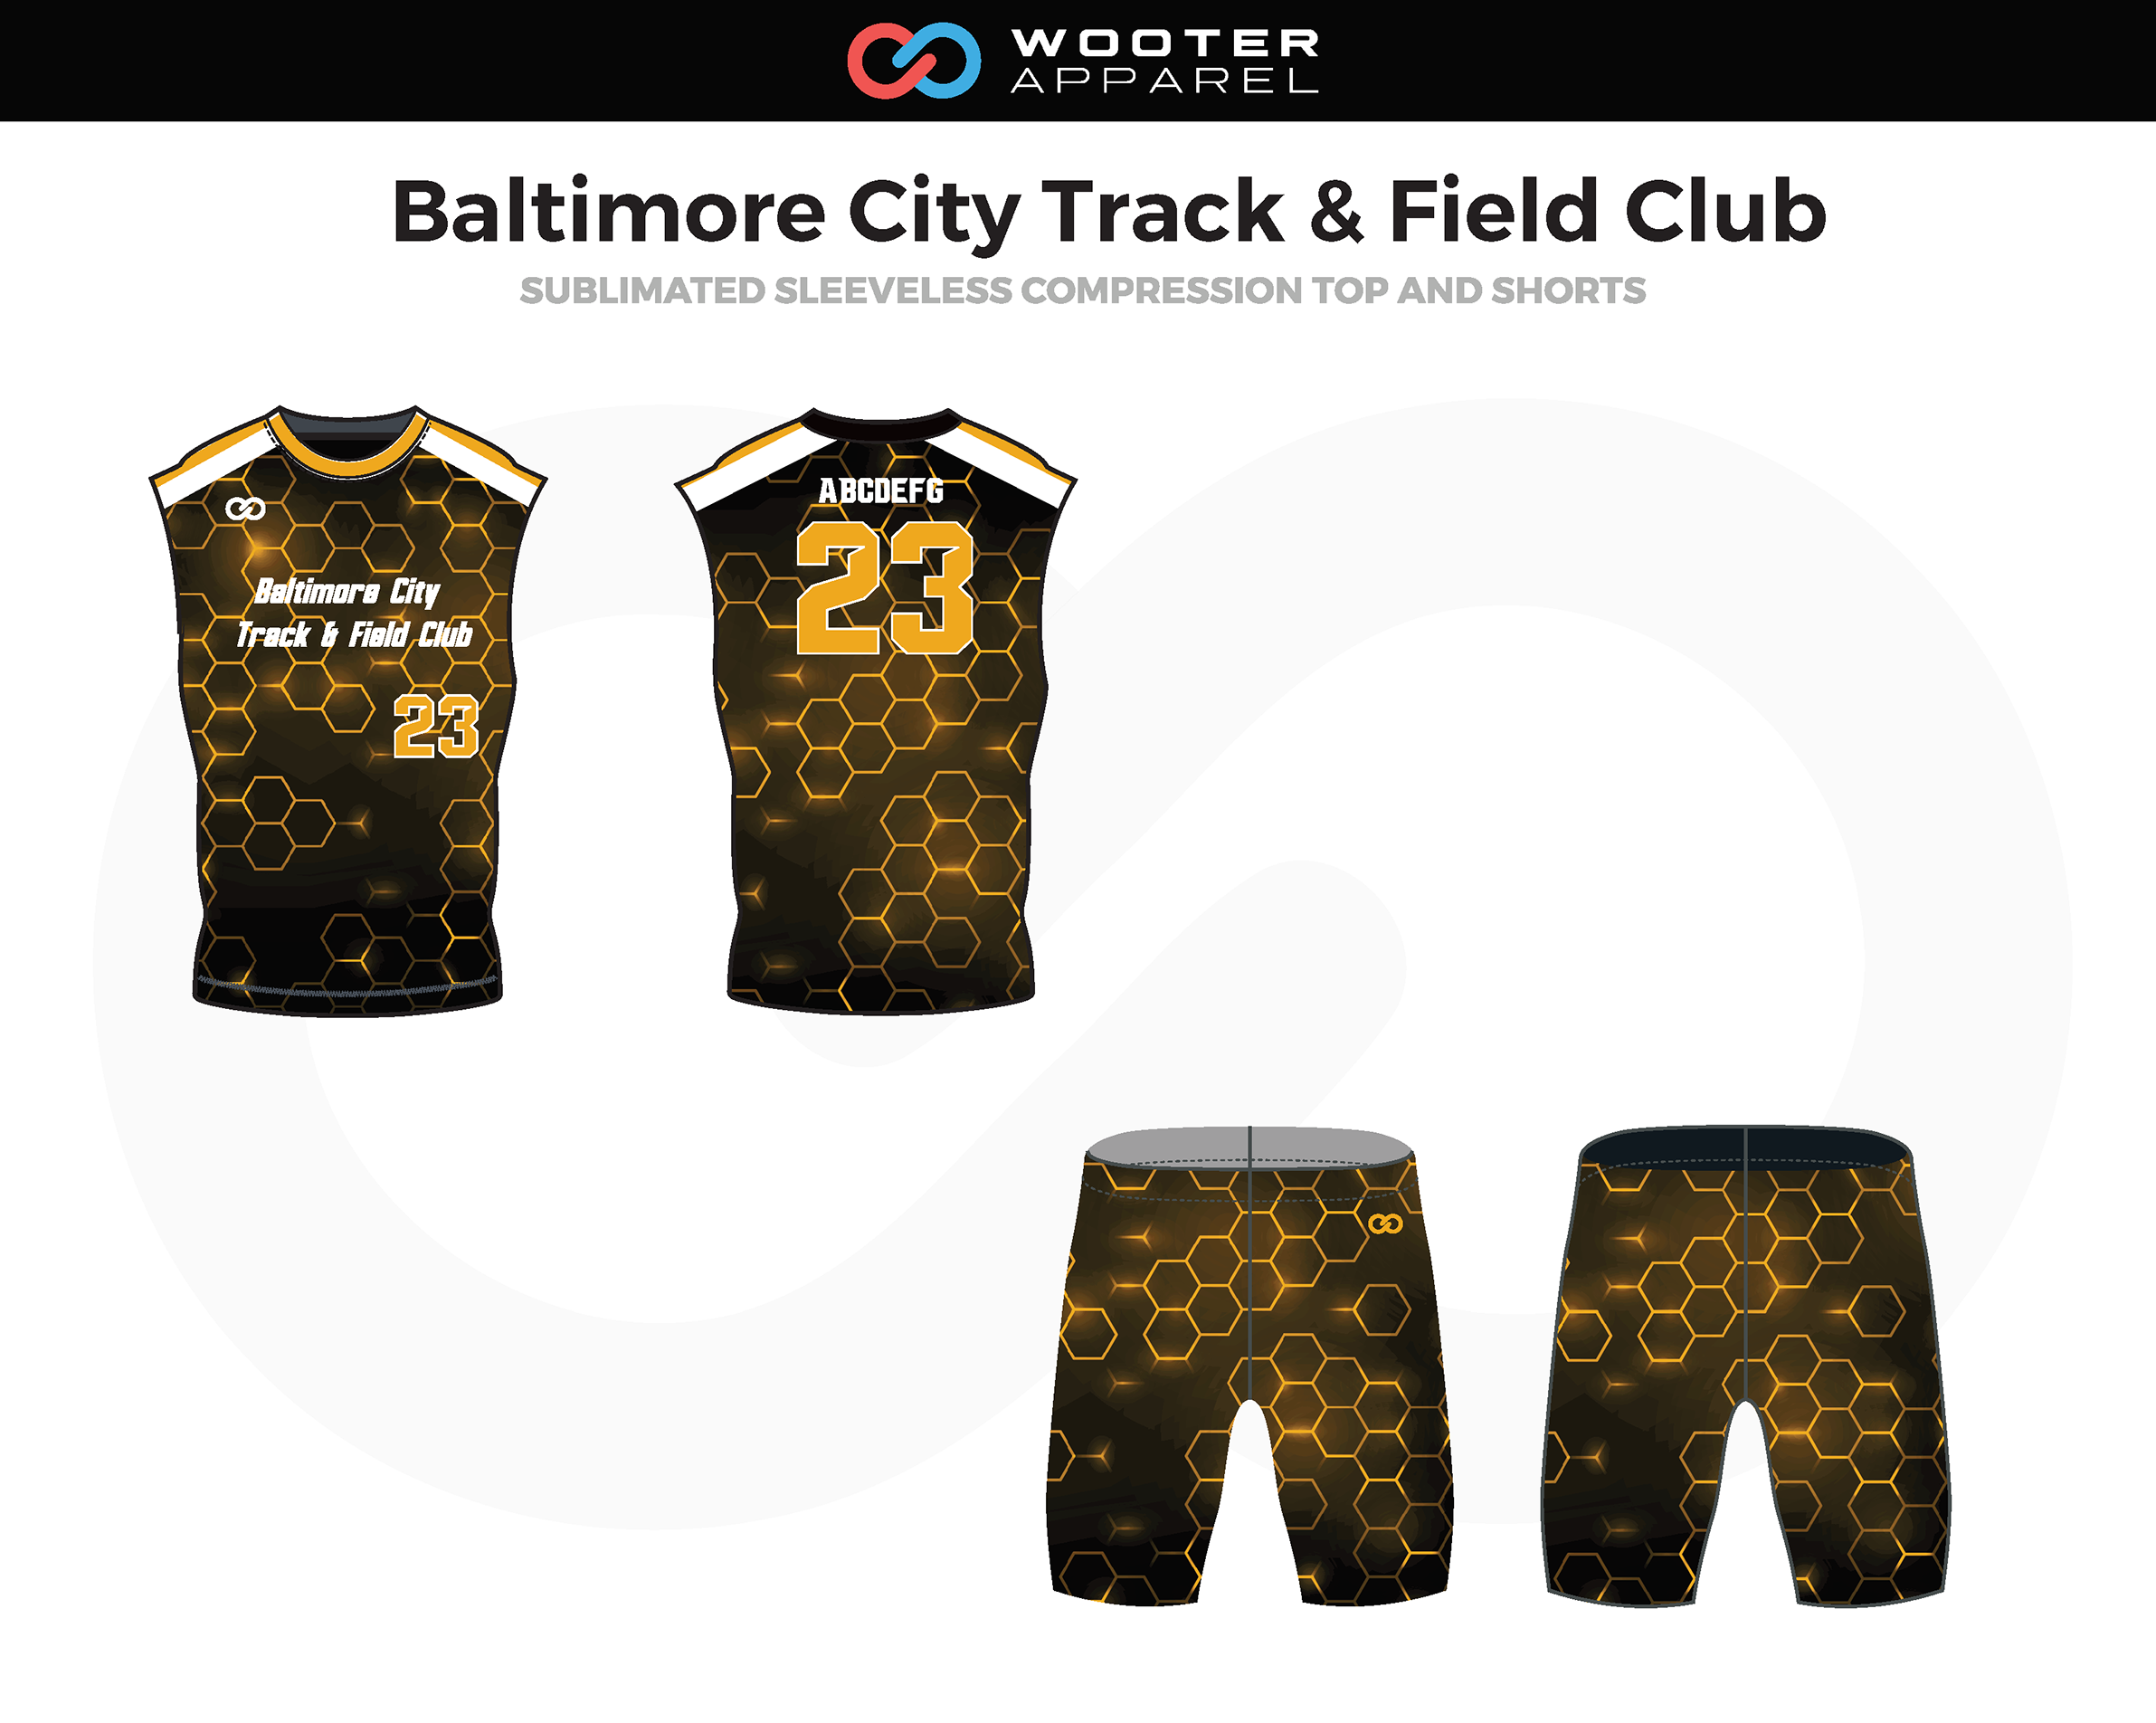 BALTIMORE CITY TRACK & FIELD CLUB Black Yellow White Track Sleeveless Compression Jerseys, and Shorts